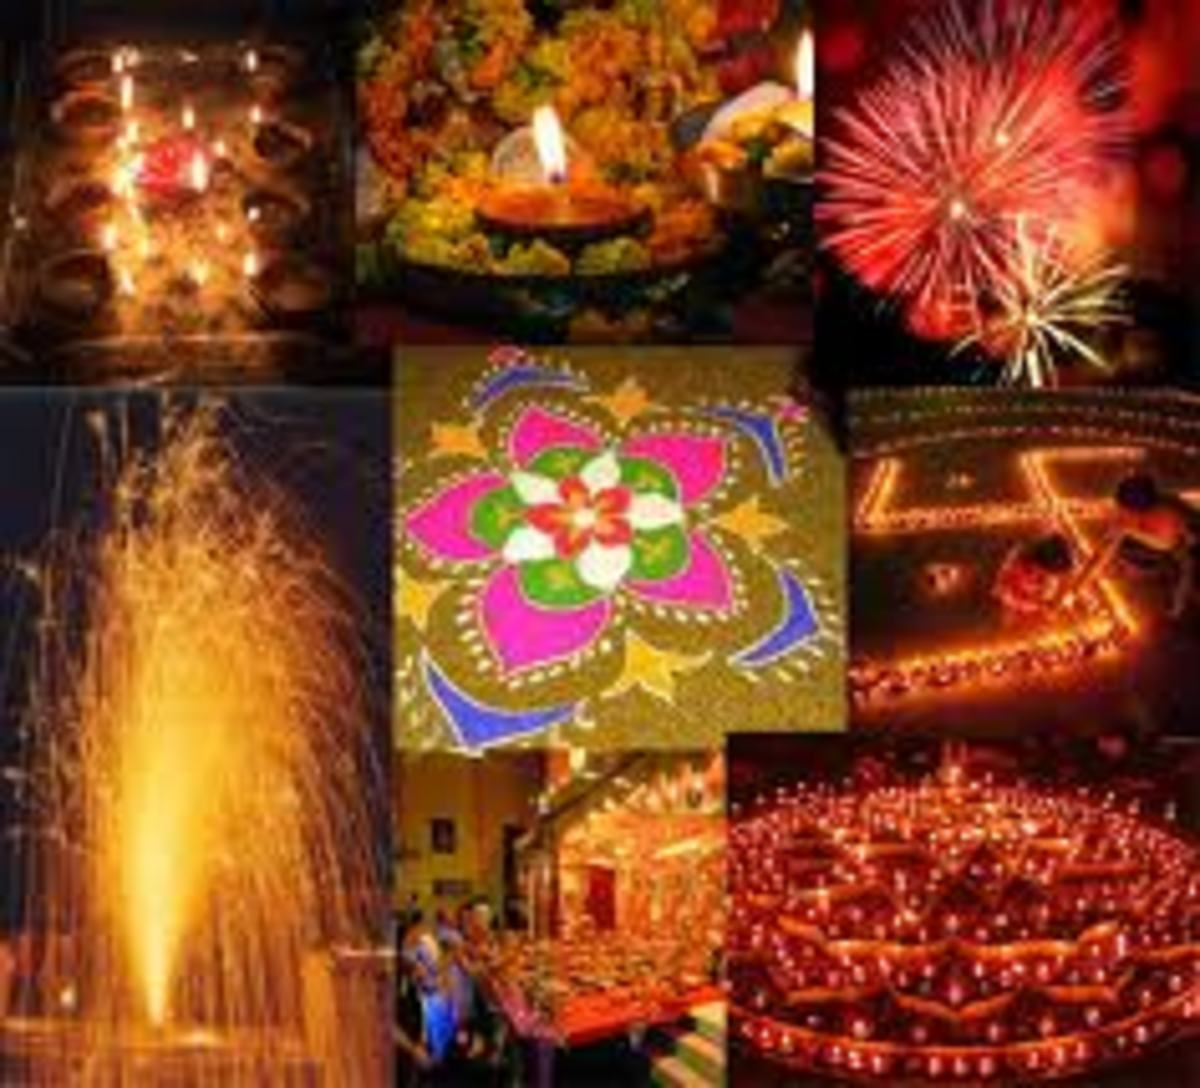 10 Best Diwali - Deepavali Gift Ideas on What to Give and Share Happiness With Your Family in India